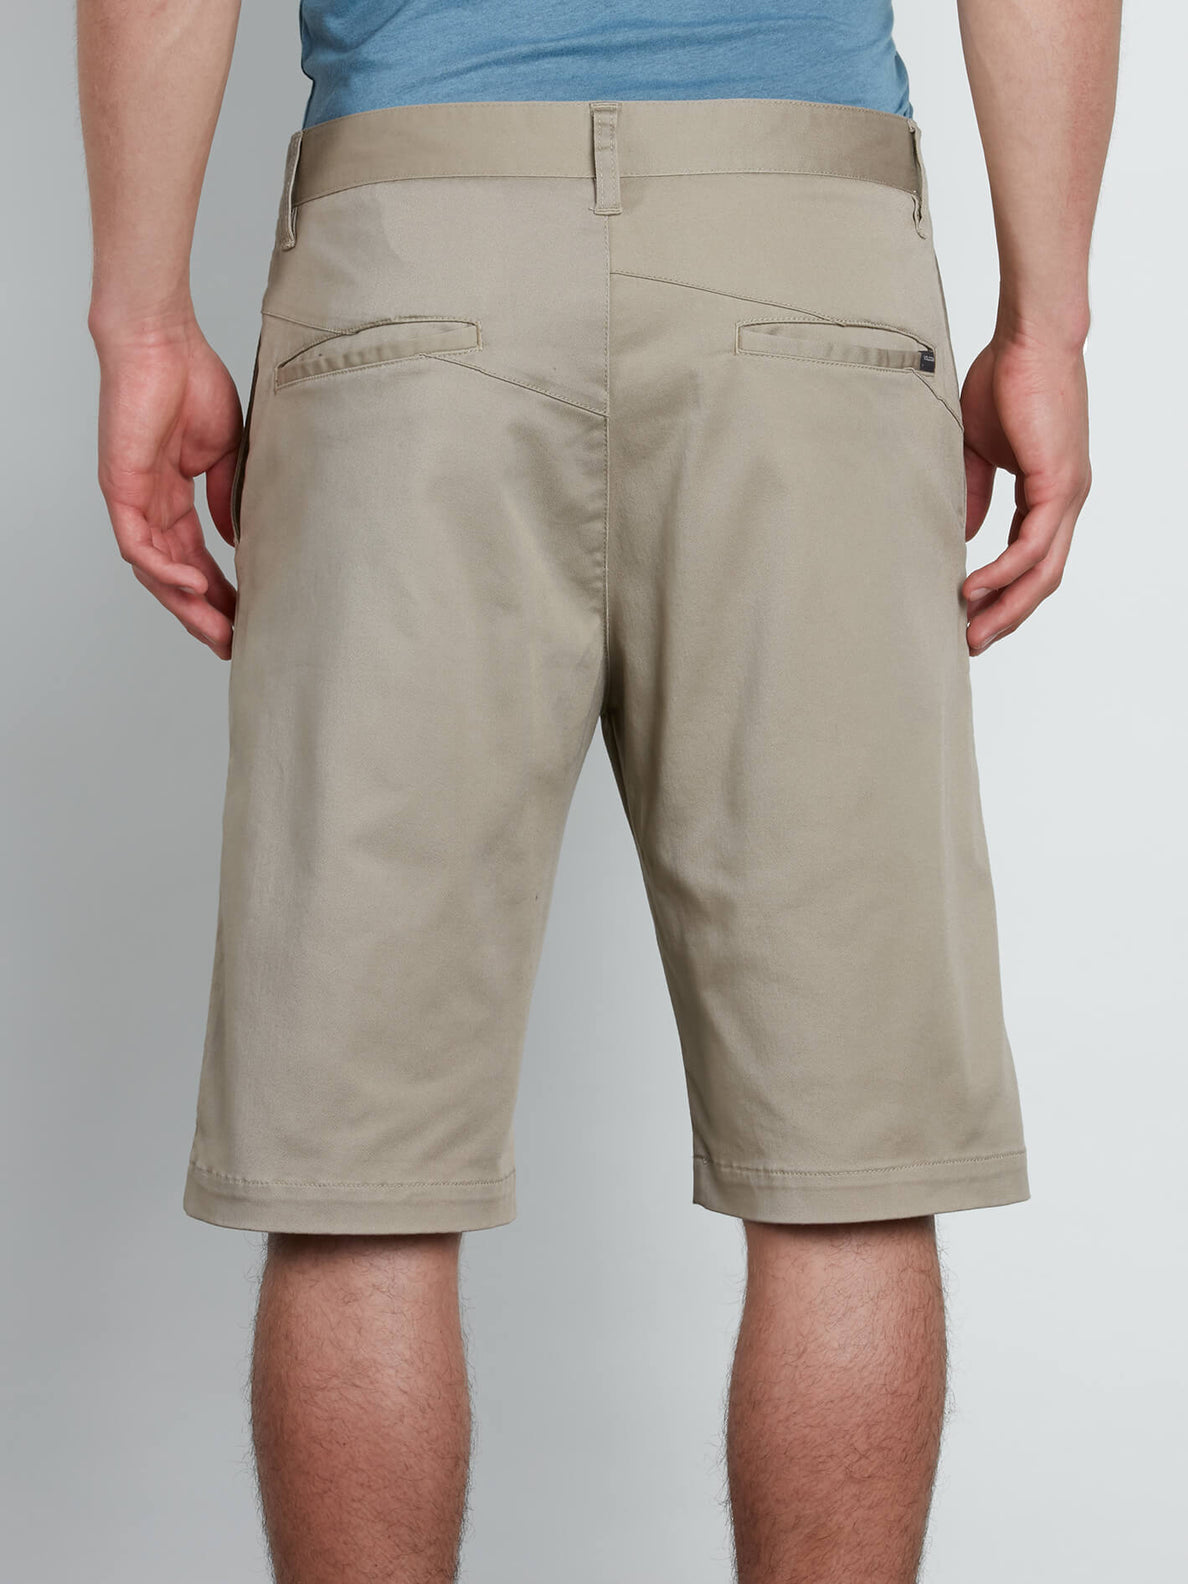 VMonty Stretch Shorts - Khaki